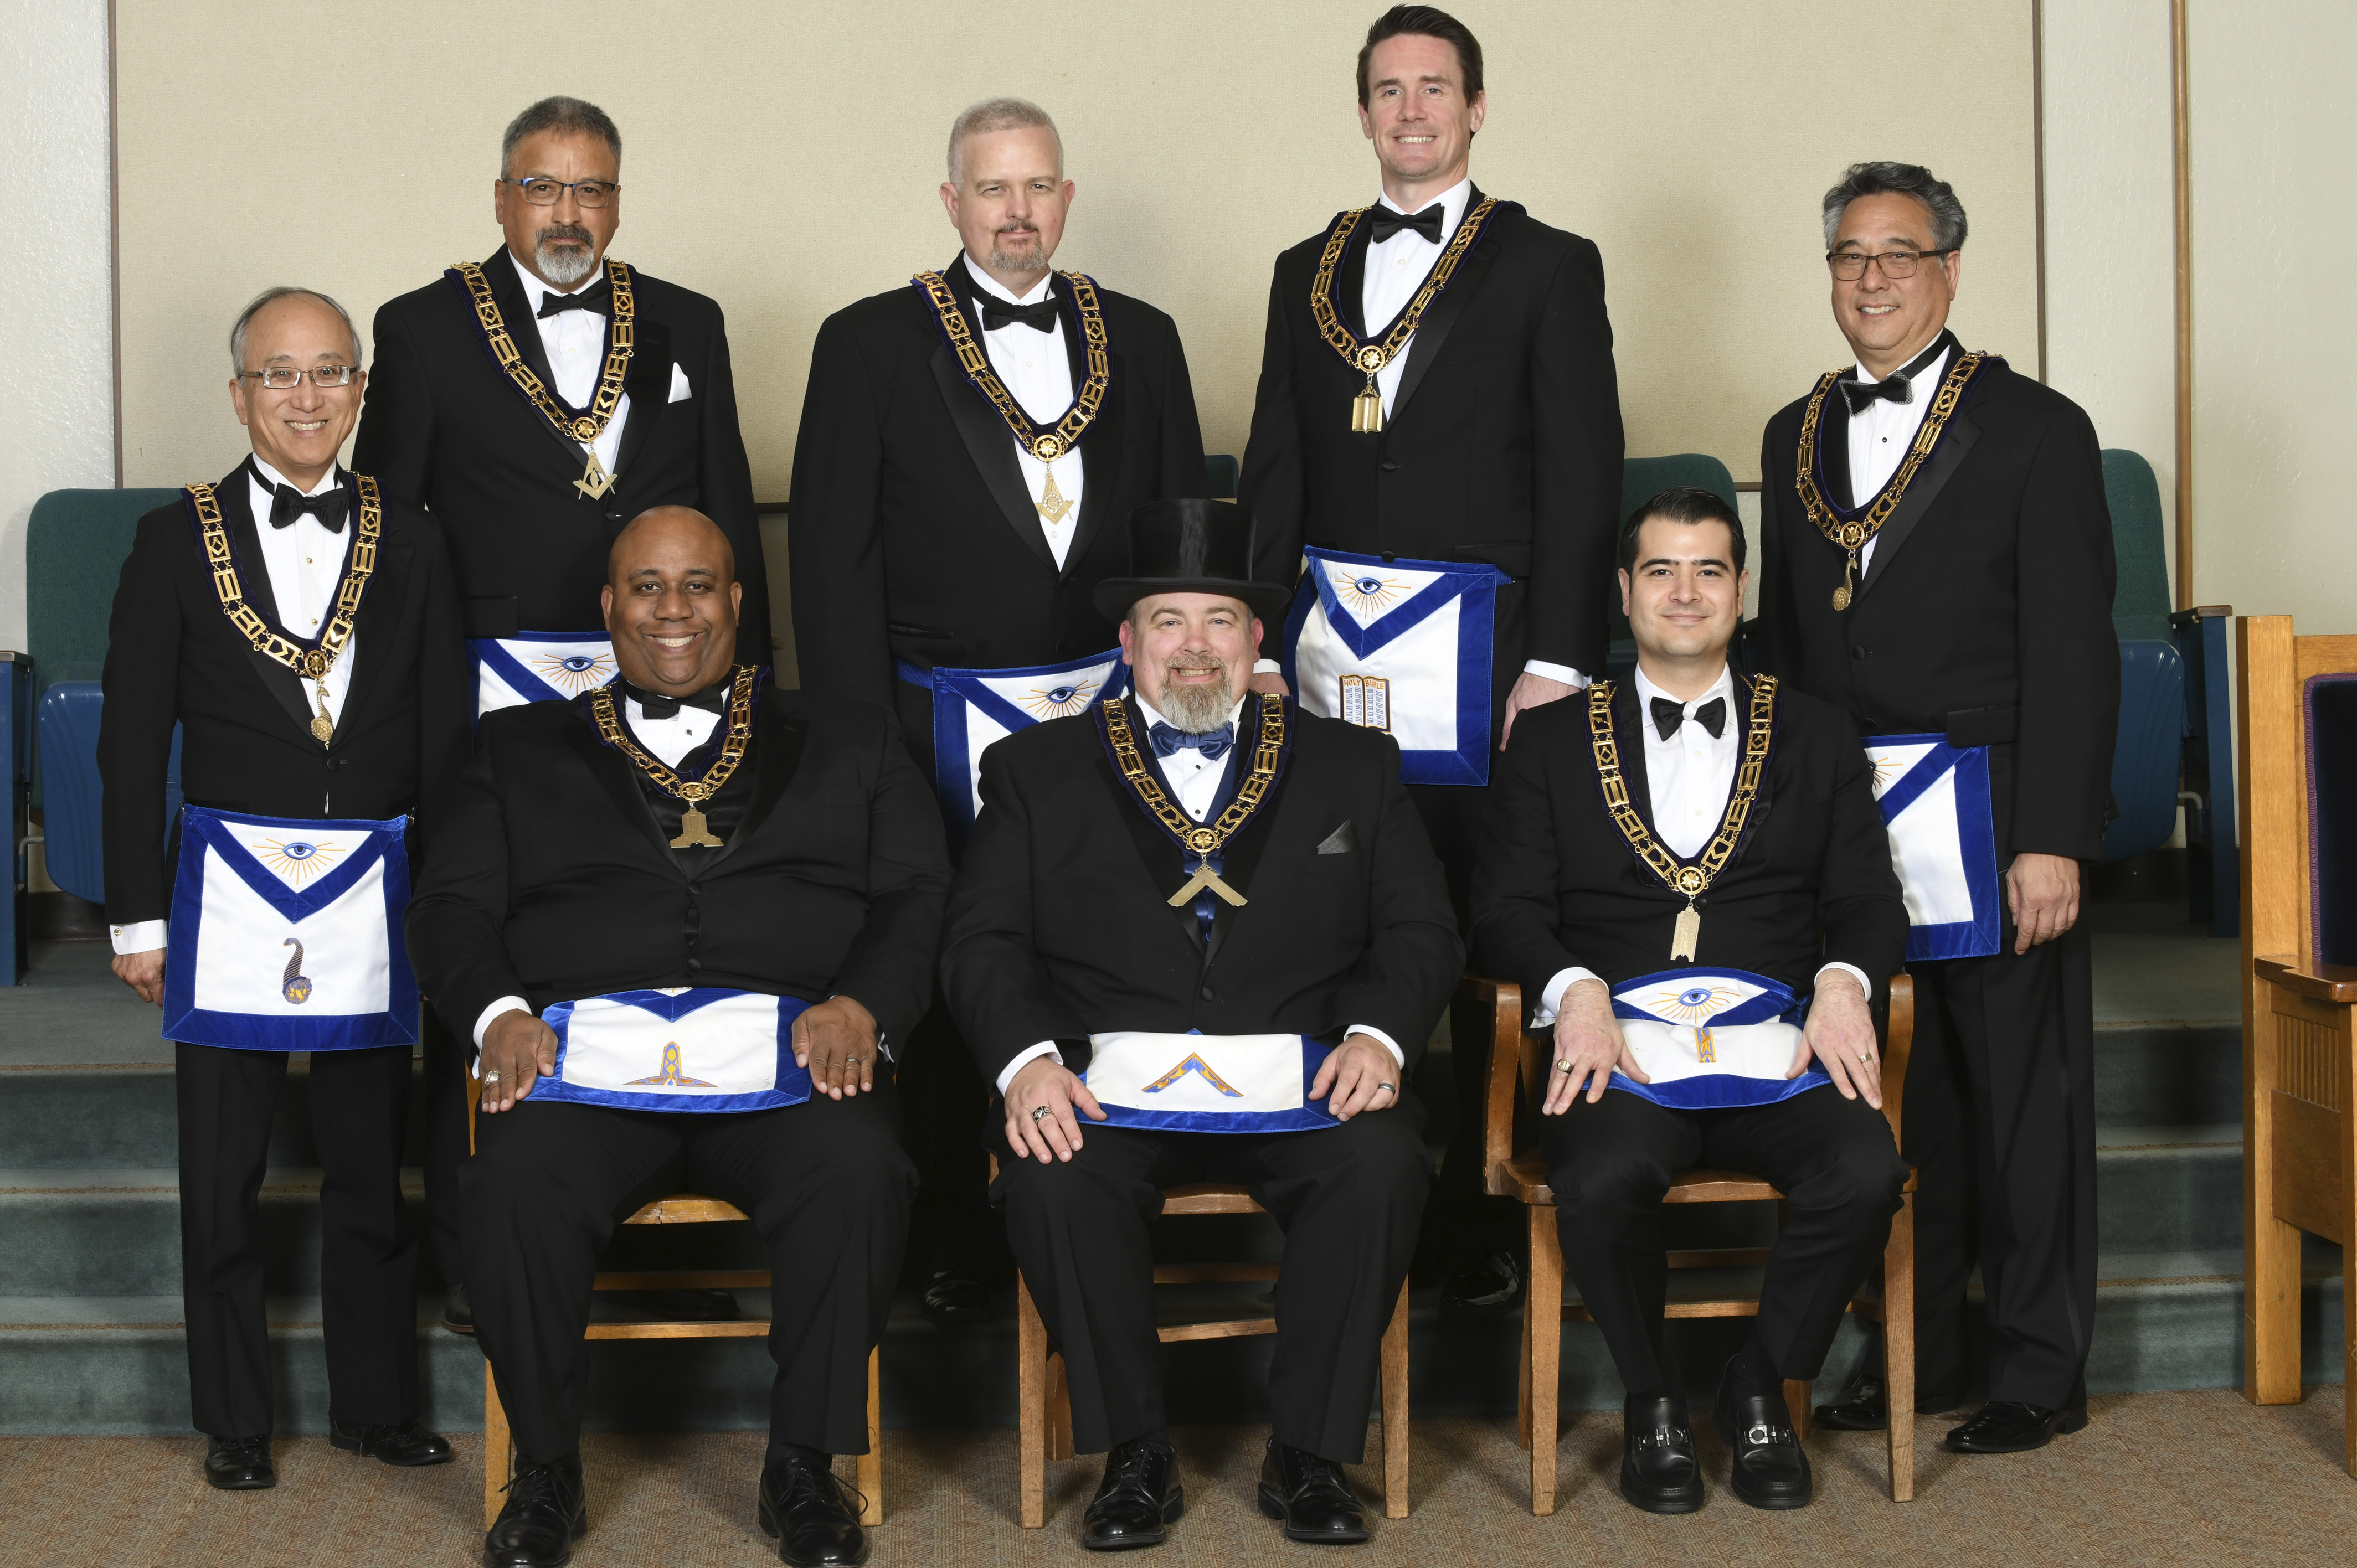 About Our Lodge - San Jose no 10